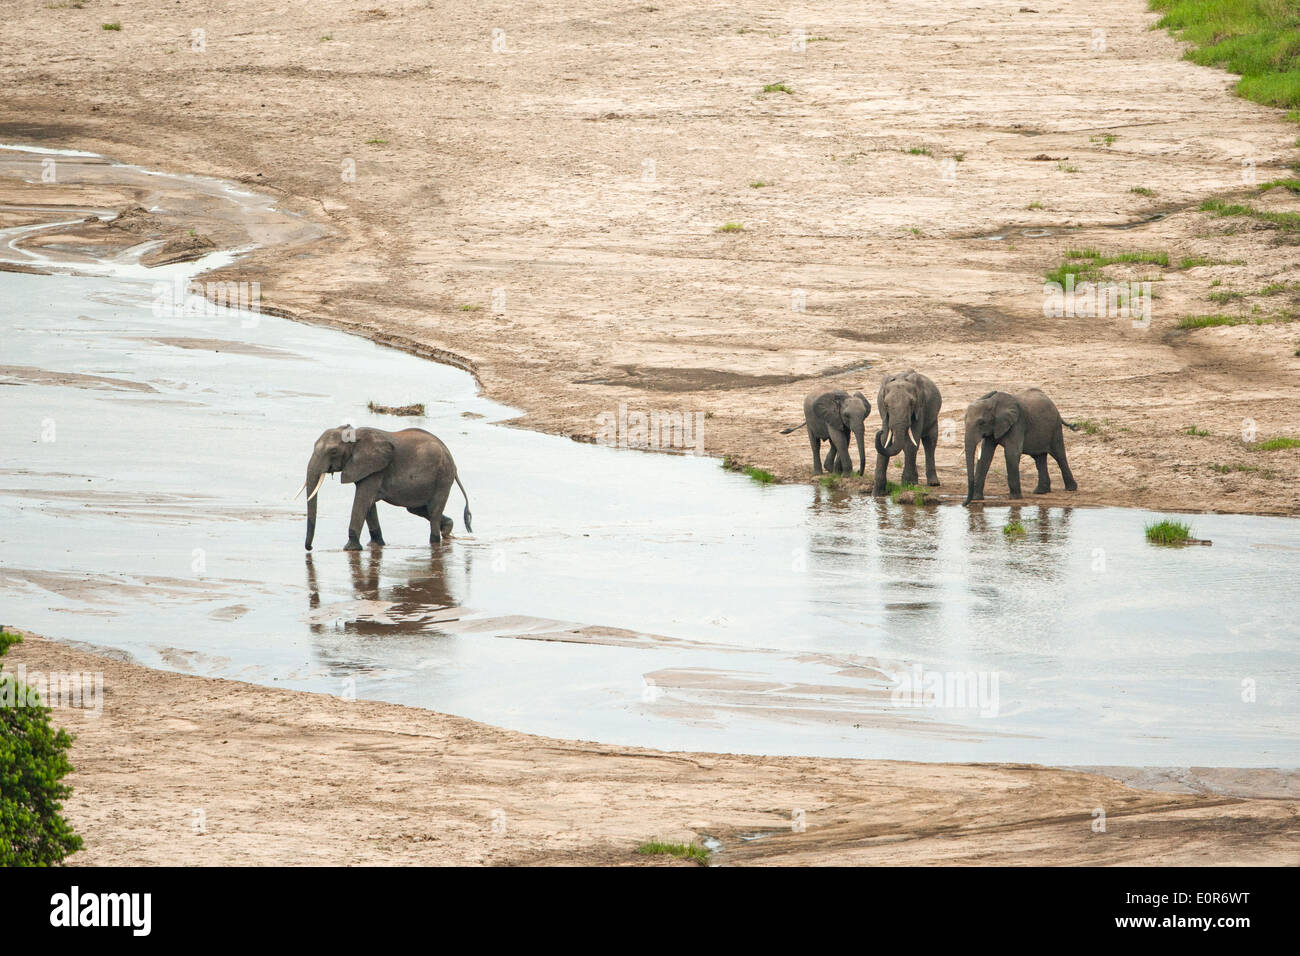 African elephant (Loxodonta africana) At the watering hole. Photographed in Tanzania - Stock Image